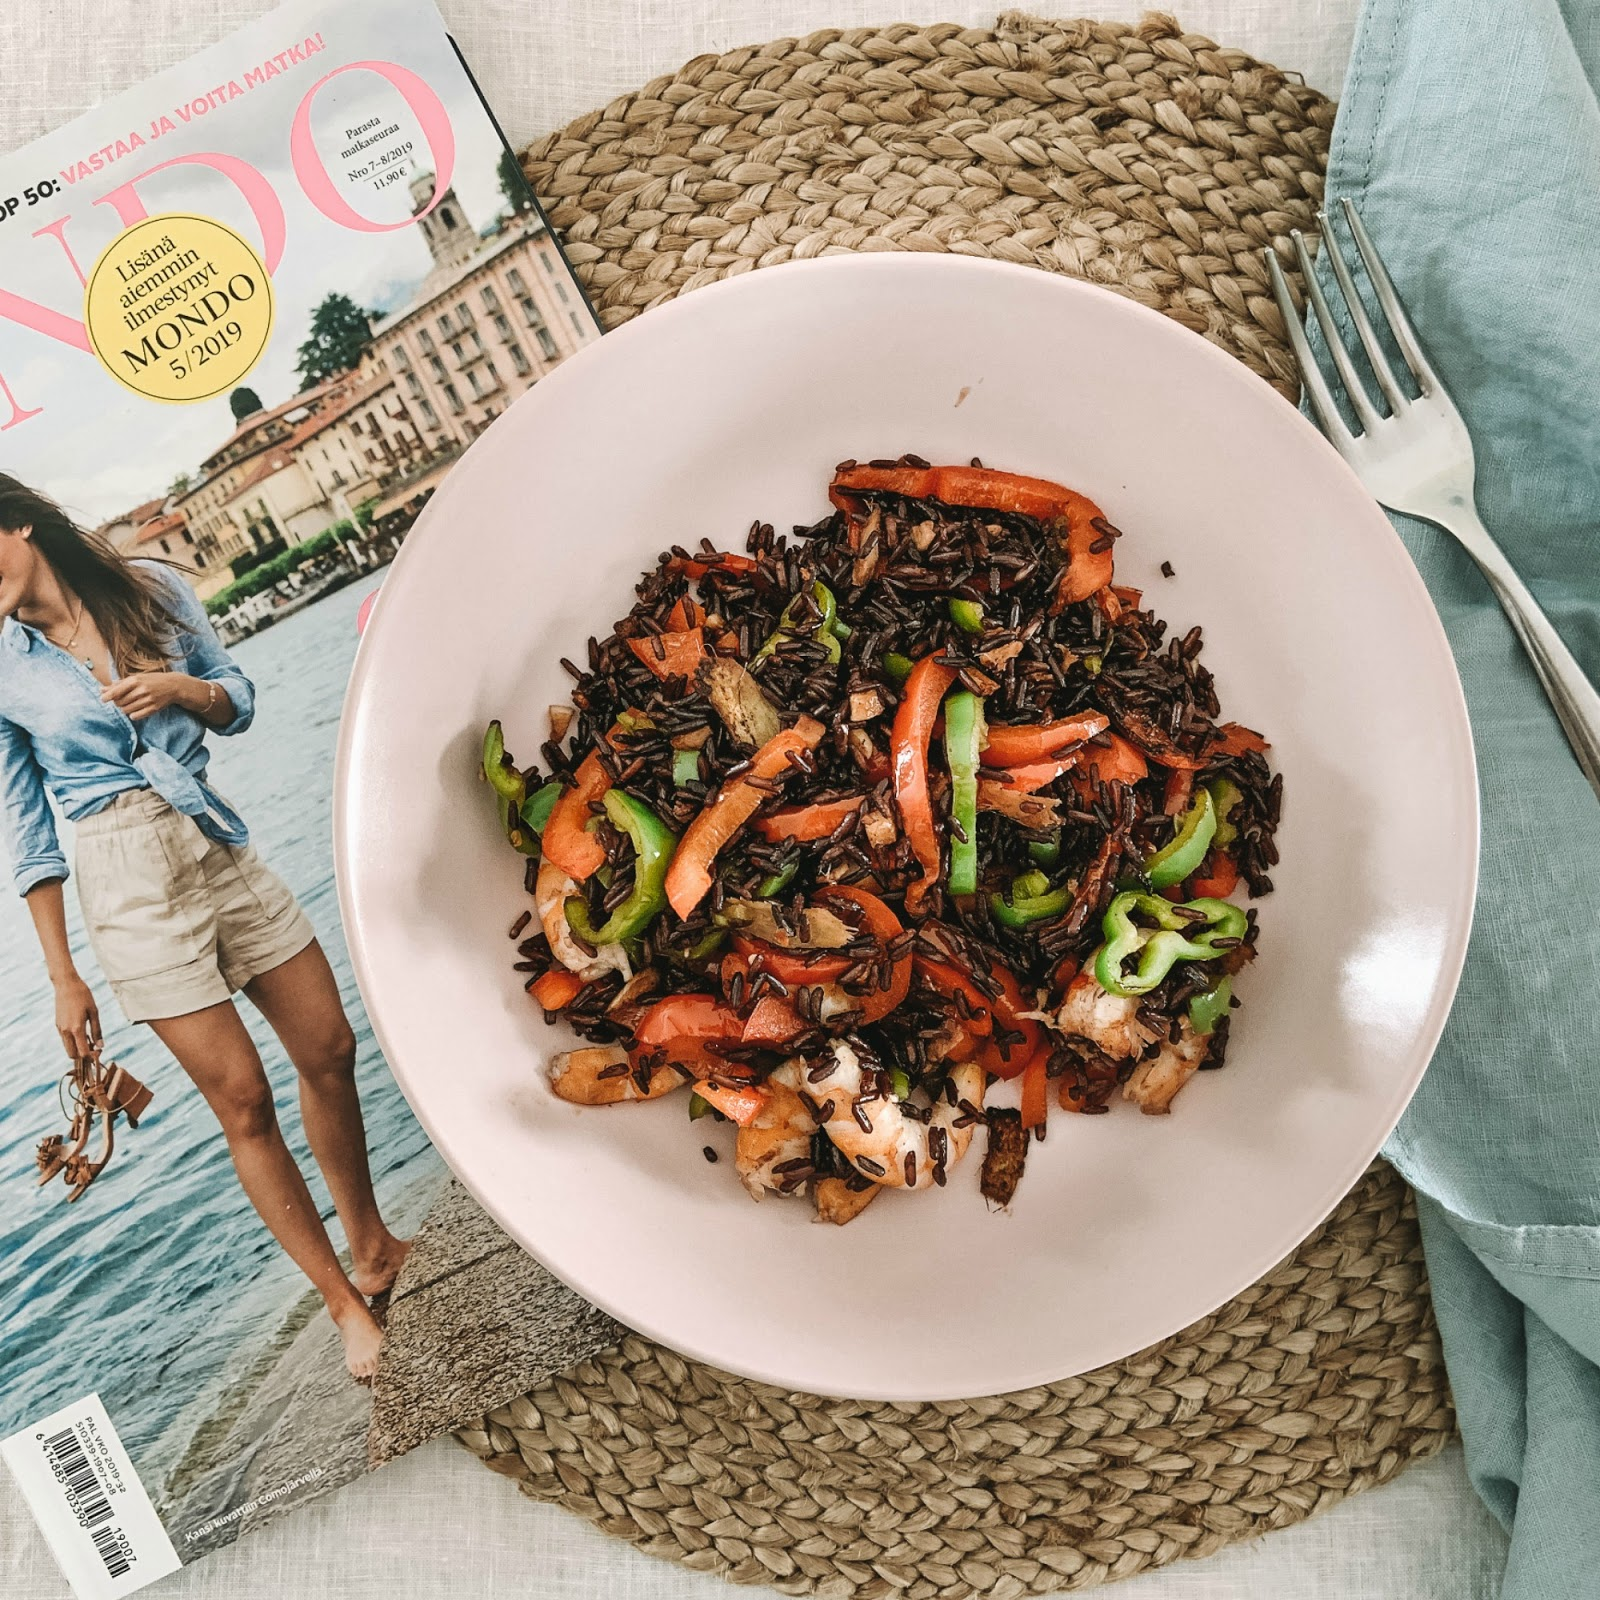 Recipe for fried wild rice for lunch